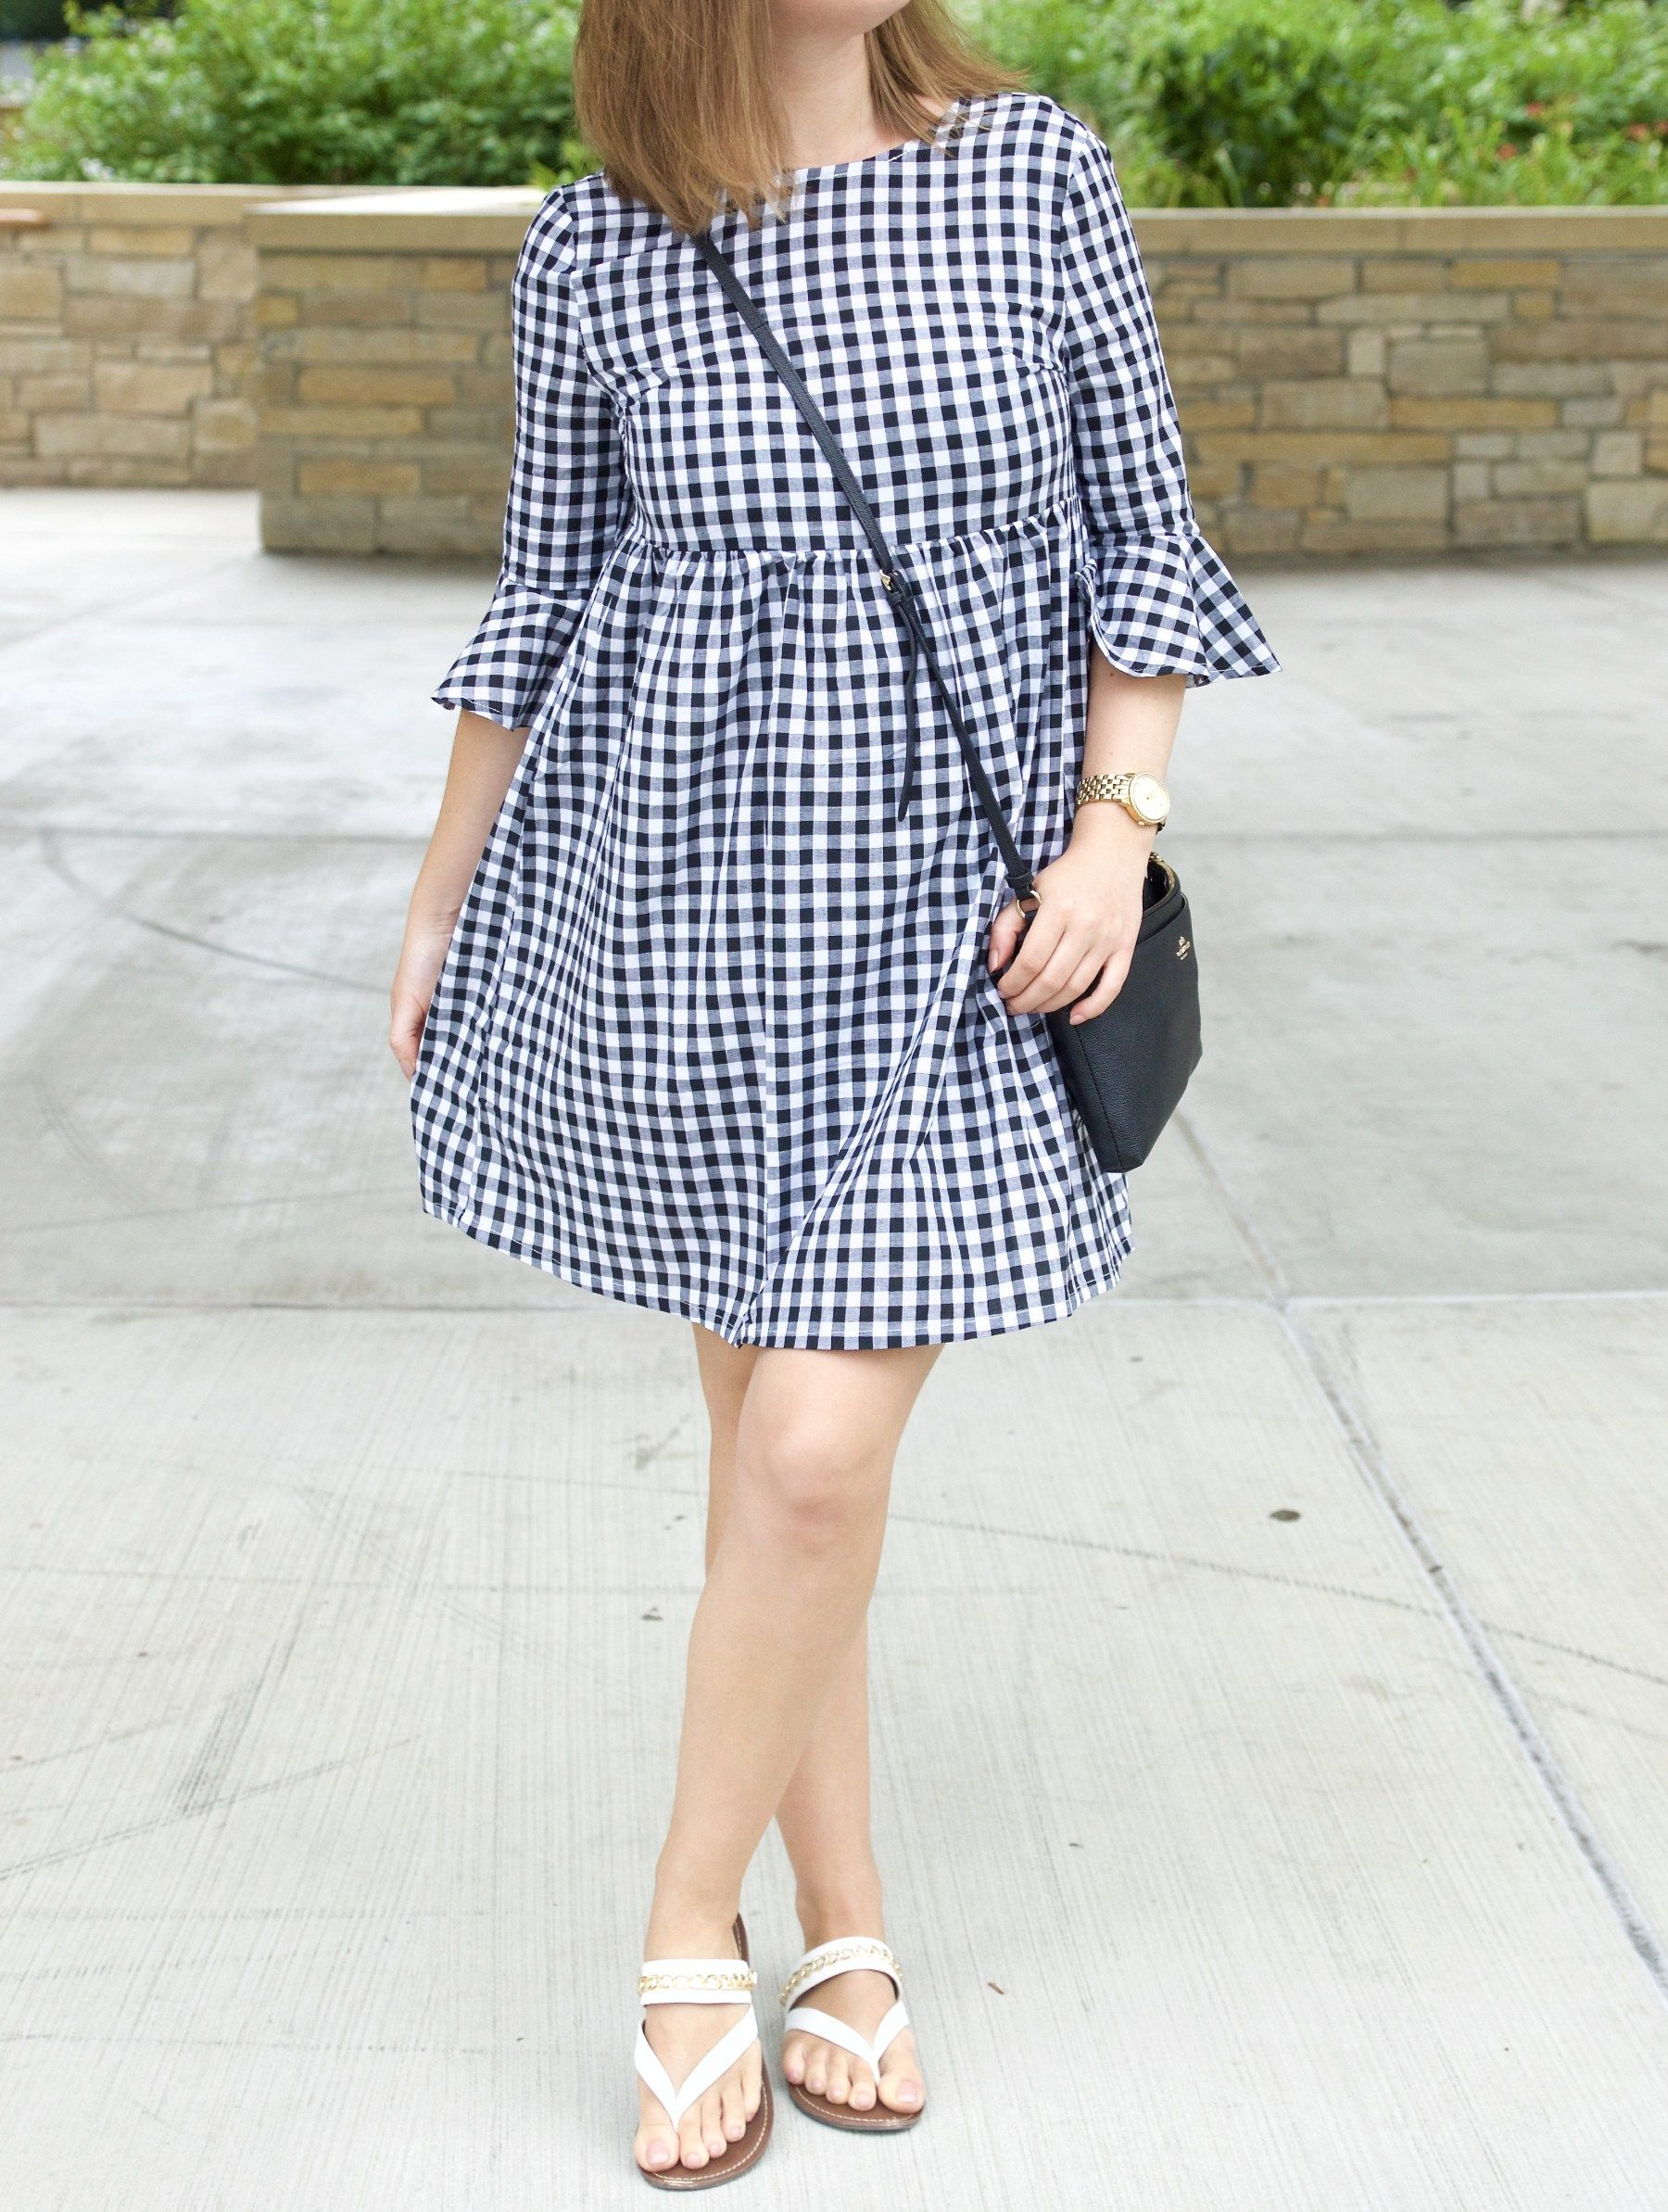 b9ccae3a7f3 Black and white gingham dress with bow ties at the back